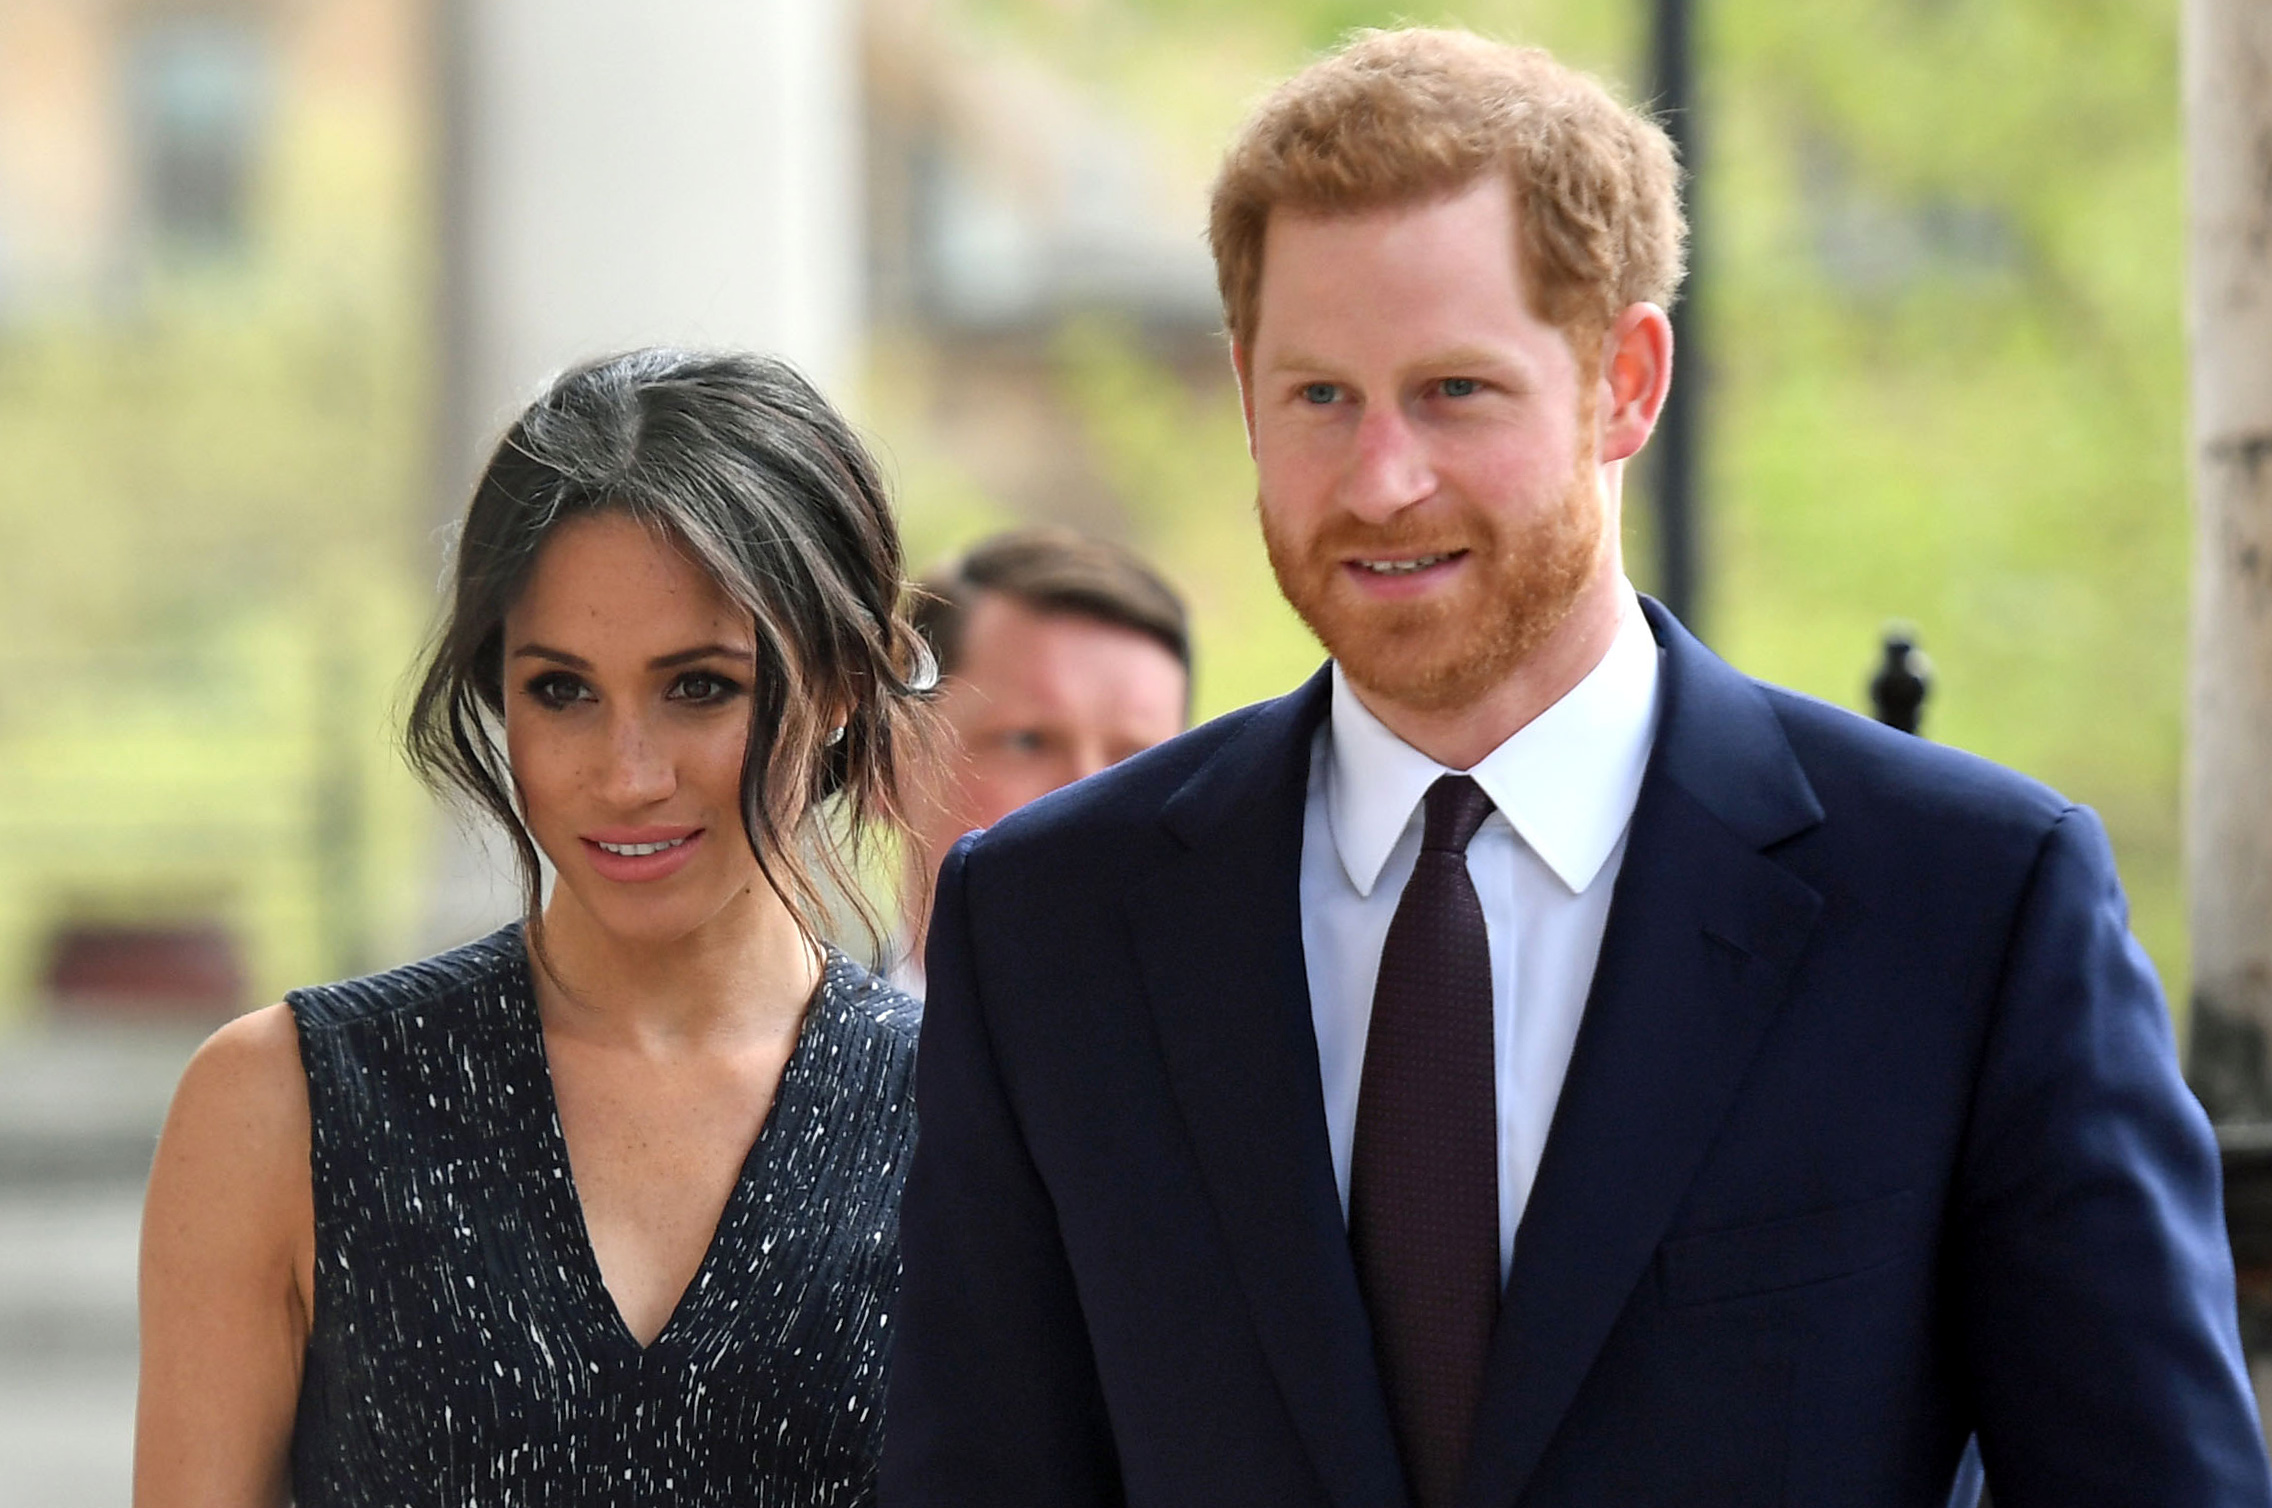 Court documents claim Meghan Markle knew her letter to her father would be published